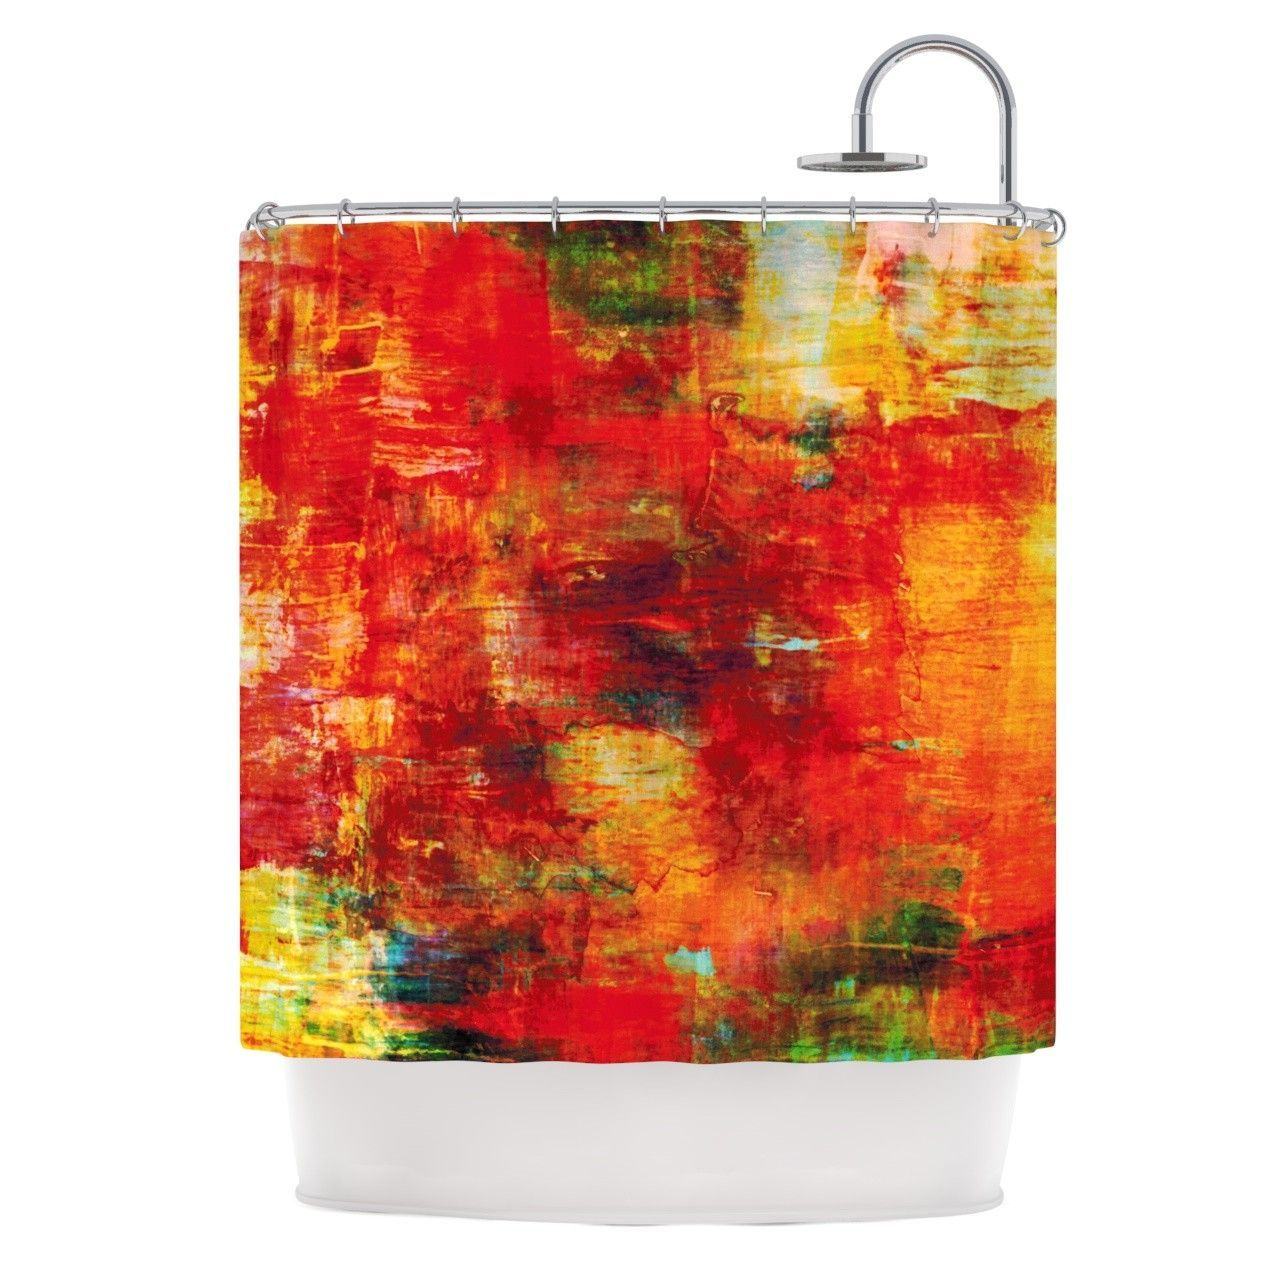 Japanese Temple In Fall Shower Curtain Set